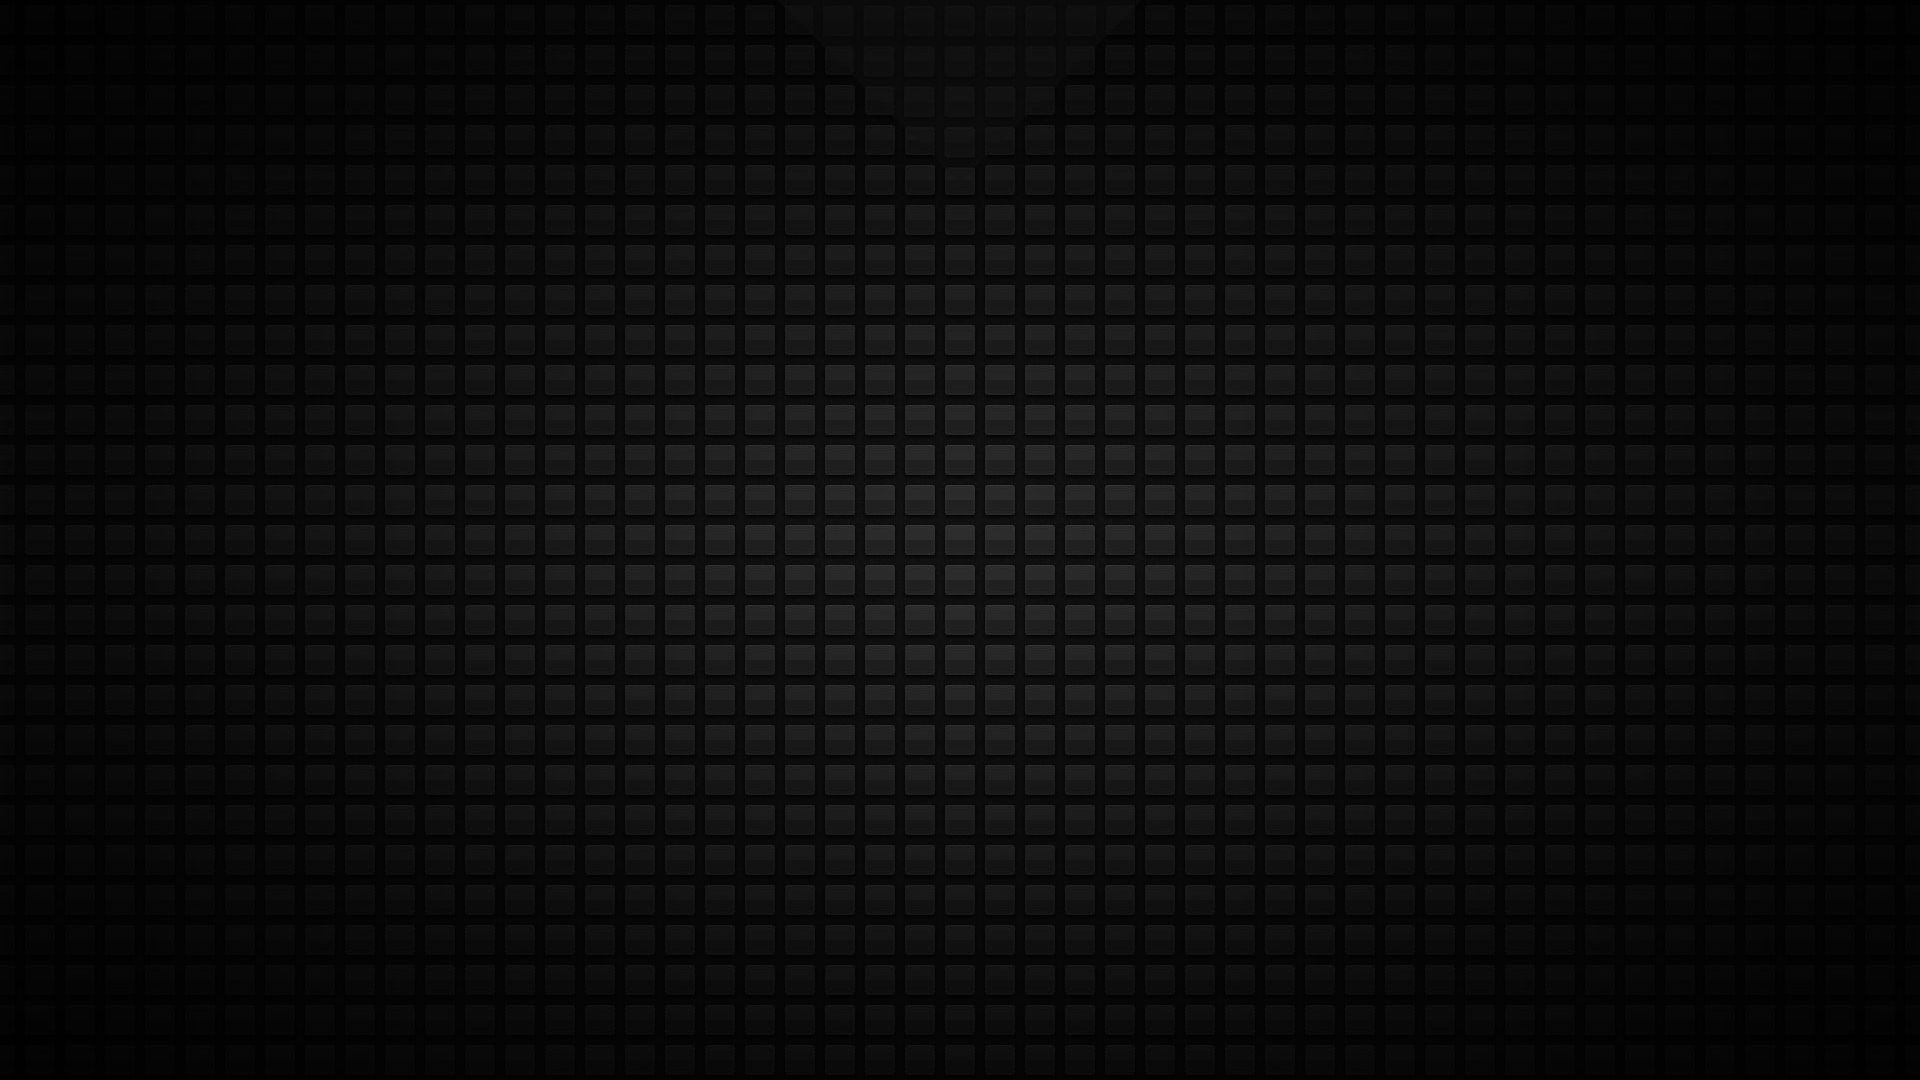 Dark Grey Square Pattern Wallpaper   MixHD wallpapers 1920x1080